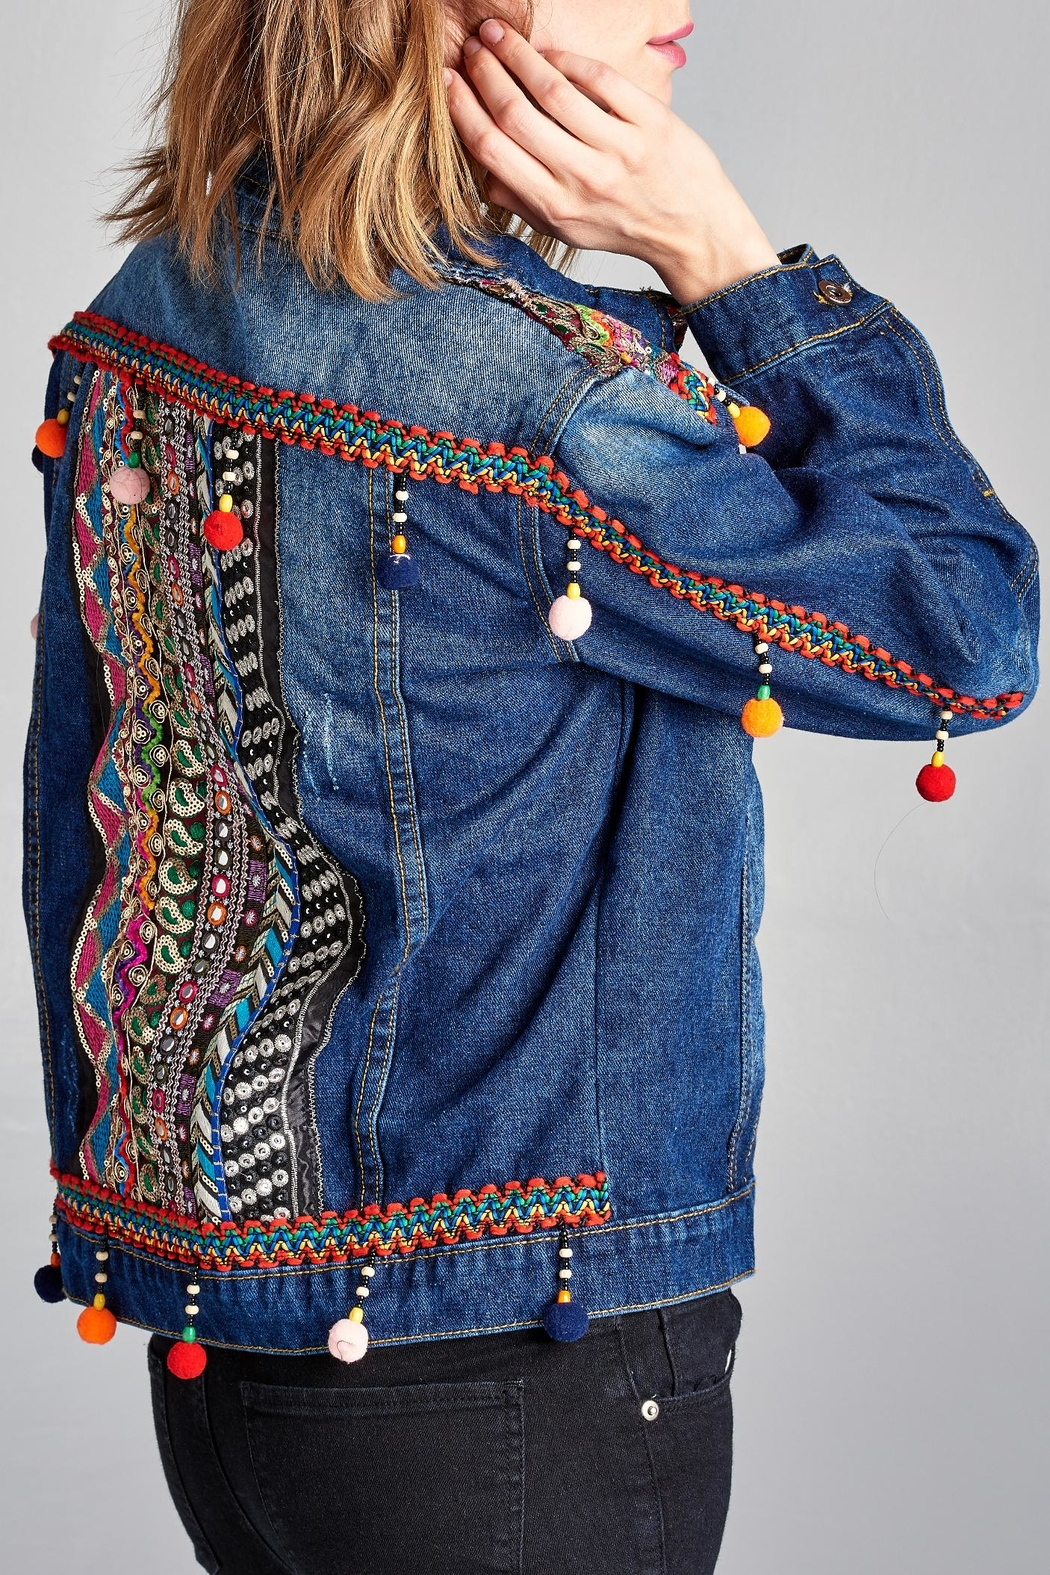 Velzera Pom-Pom Embroidered Jean-Jacket - Main Image